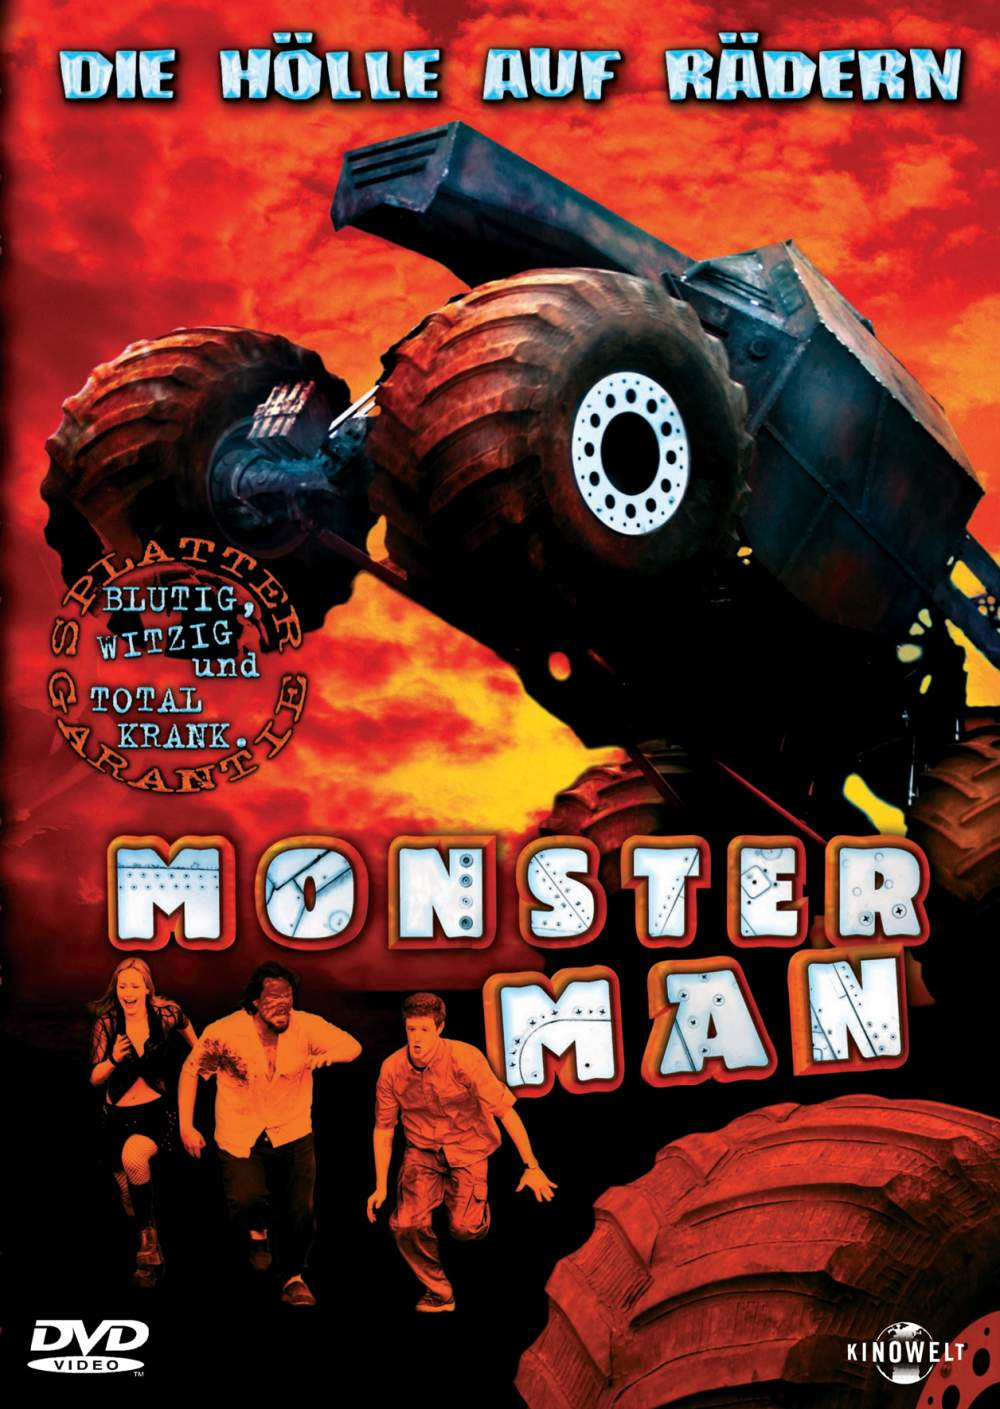 Monsterman